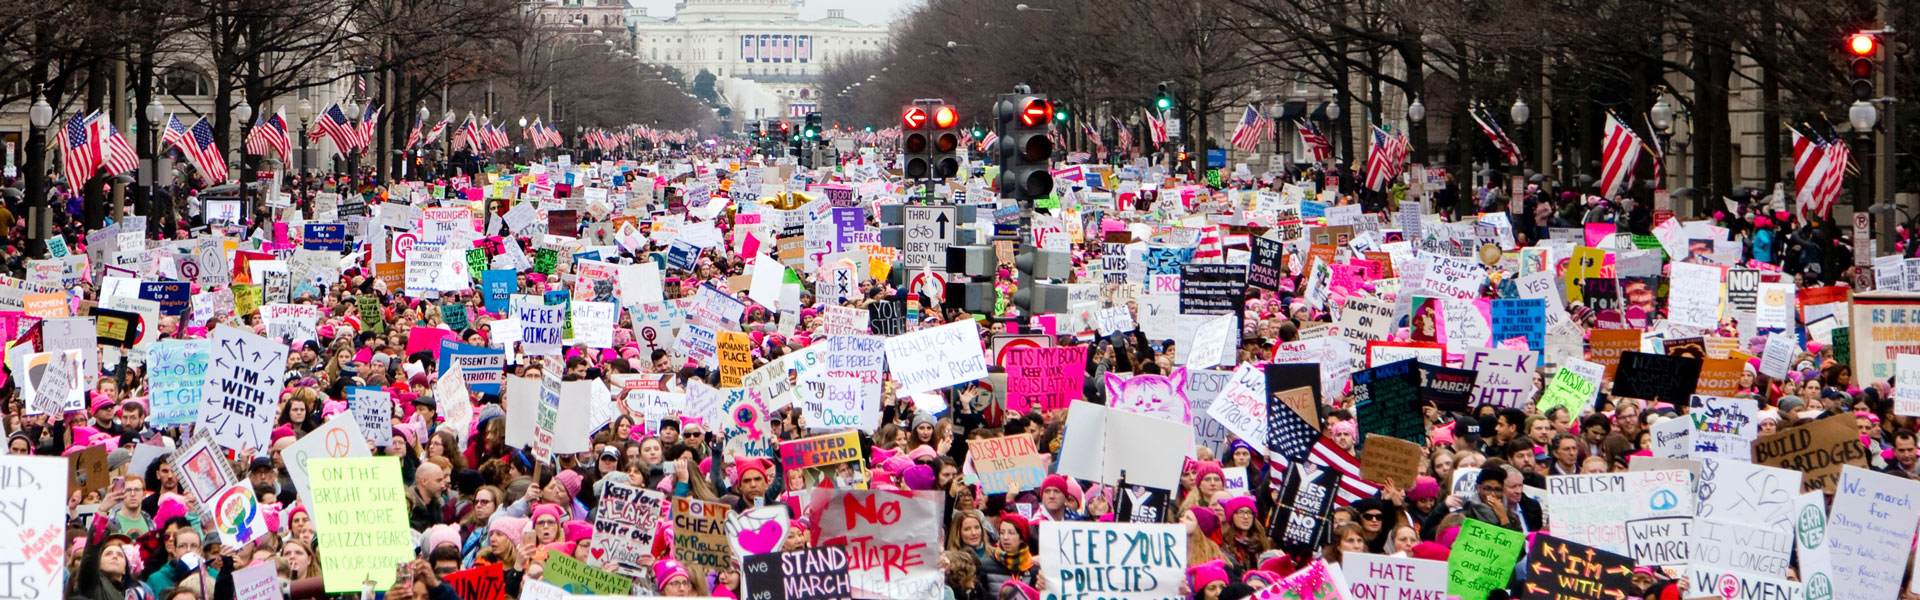 Image of the Women's March in Washington DC during spring 2017